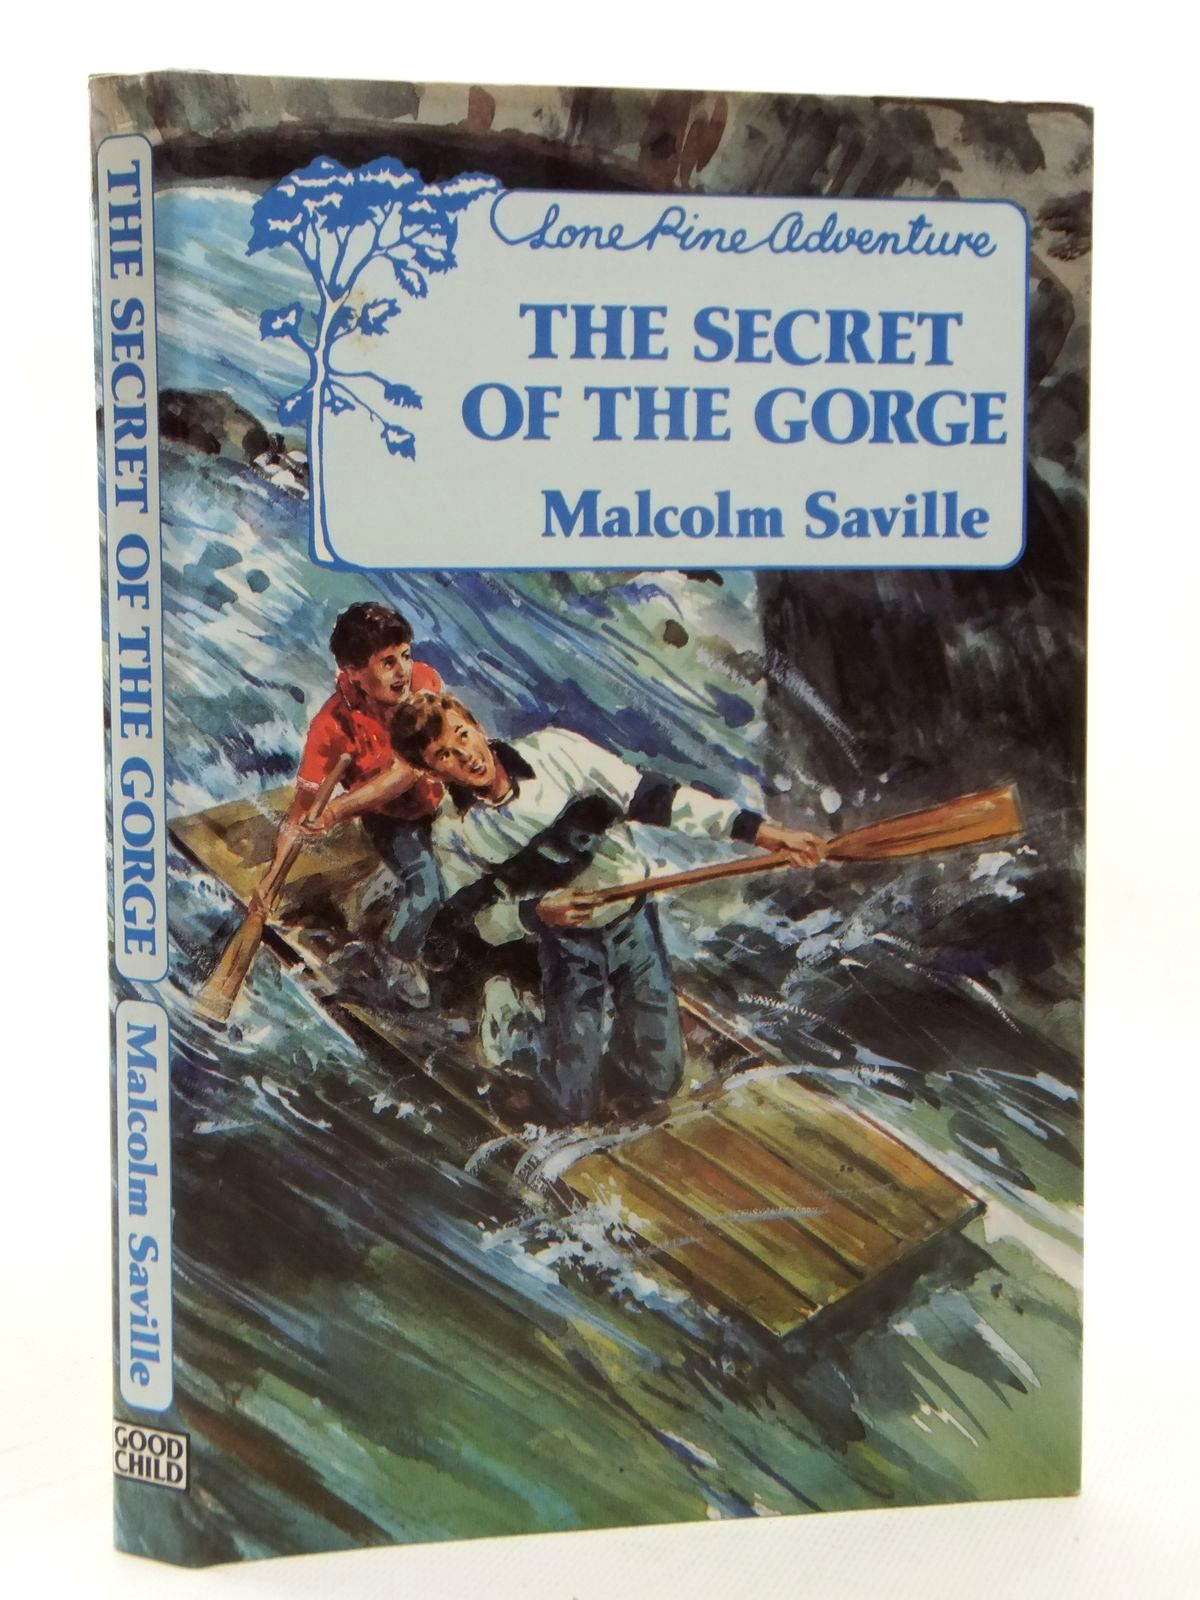 Photo of THE SECRET OF THE GORGE written by Saville, Malcolm published by John Goodchild (STOCK CODE: 1609062)  for sale by Stella & Rose's Books